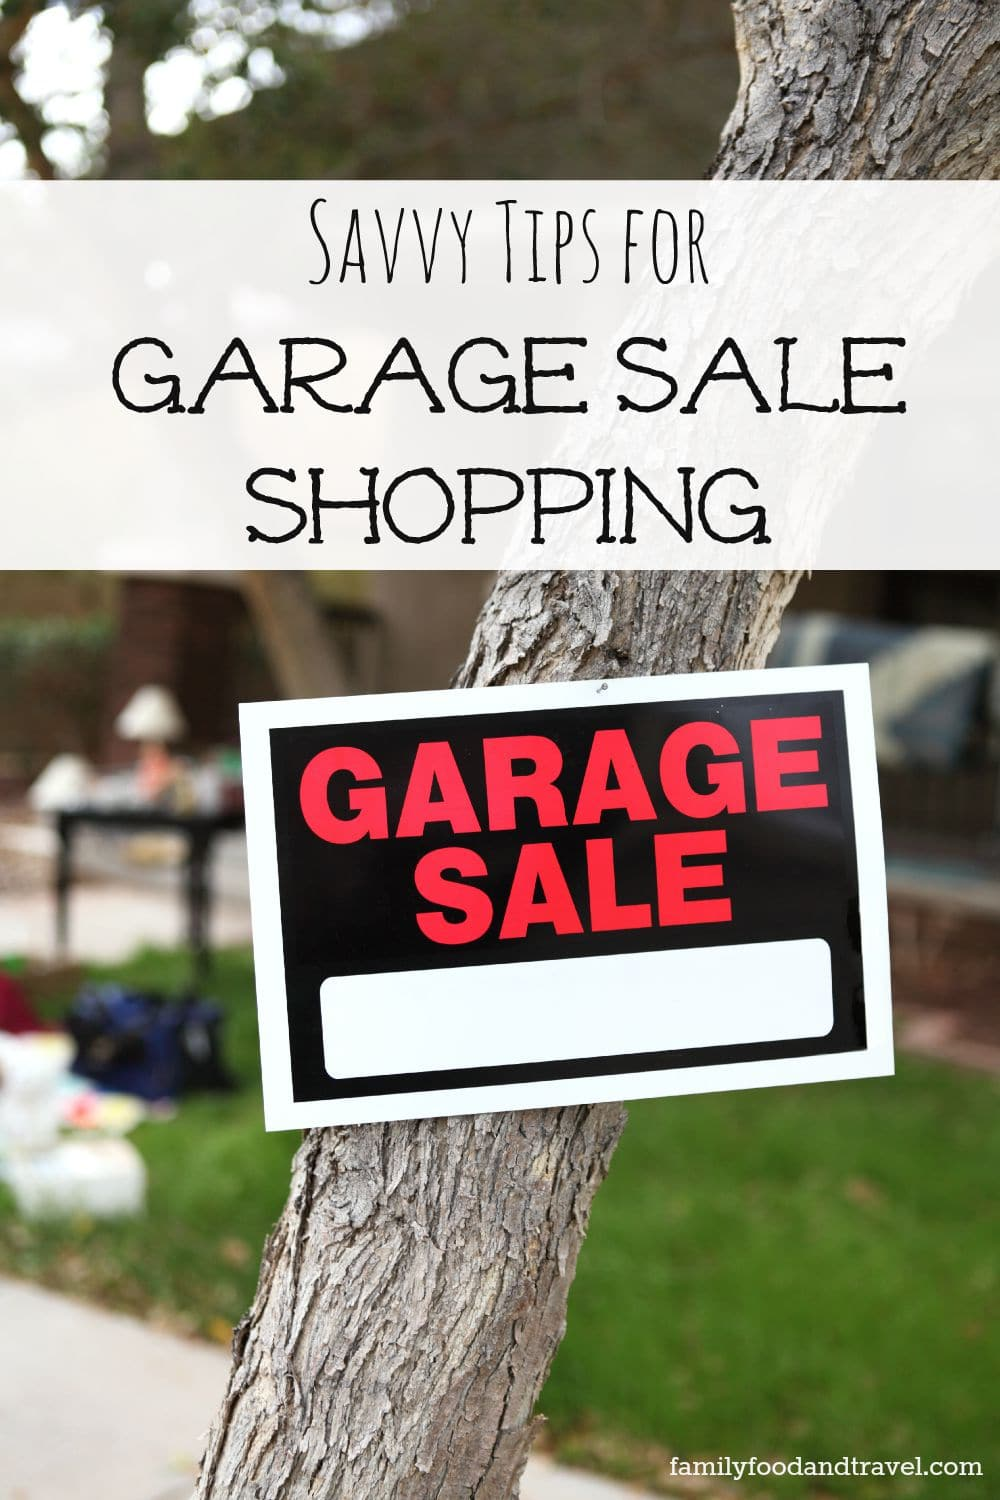 10 Savvy Tips for Garage Sale Shopping